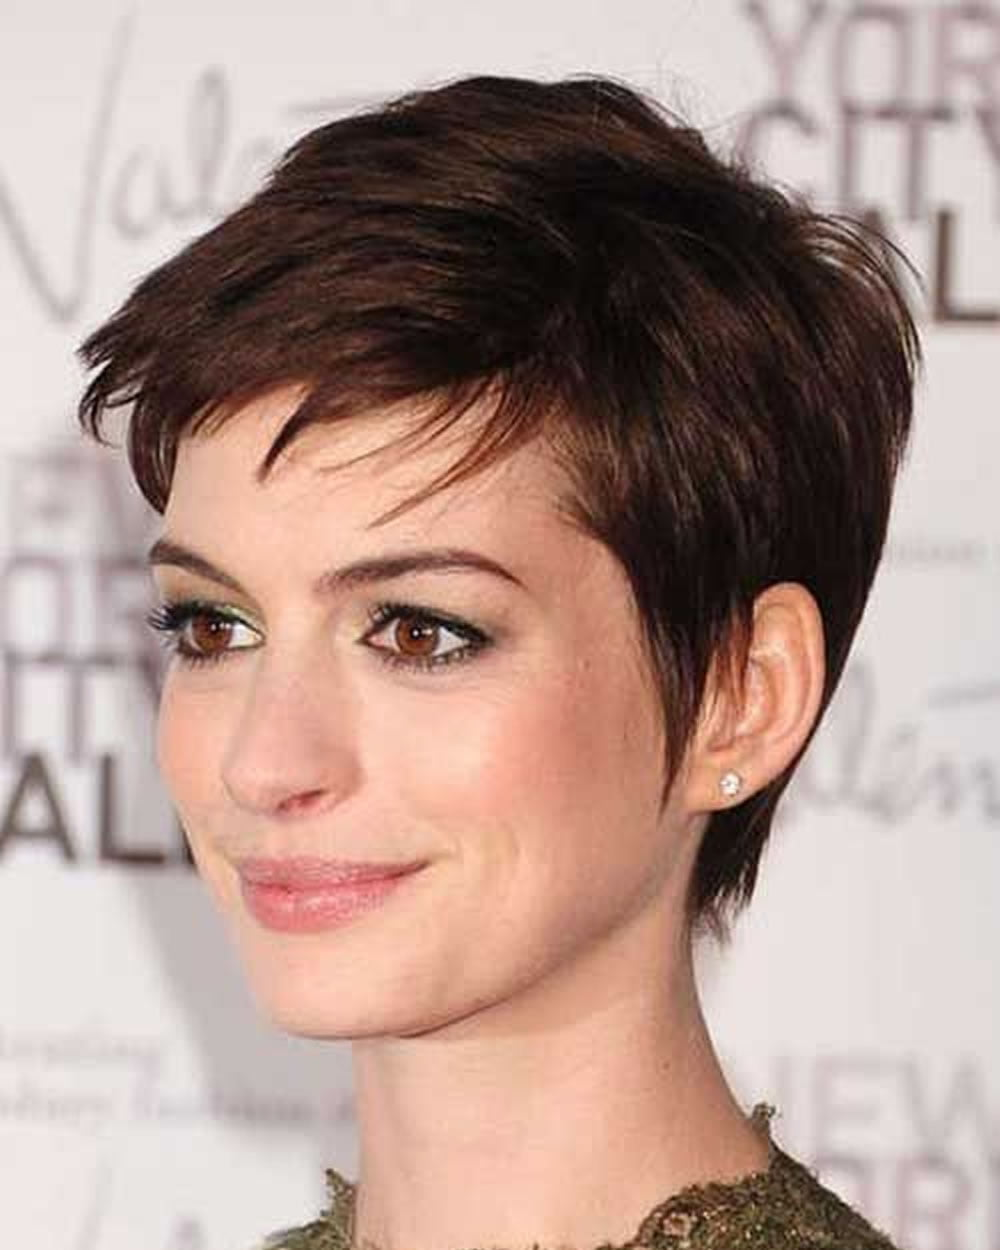 31 Chic Short Haircut Ideas 2018 Pixie Bob Hair Inspiration For Ladies Page 2 Hairstyles